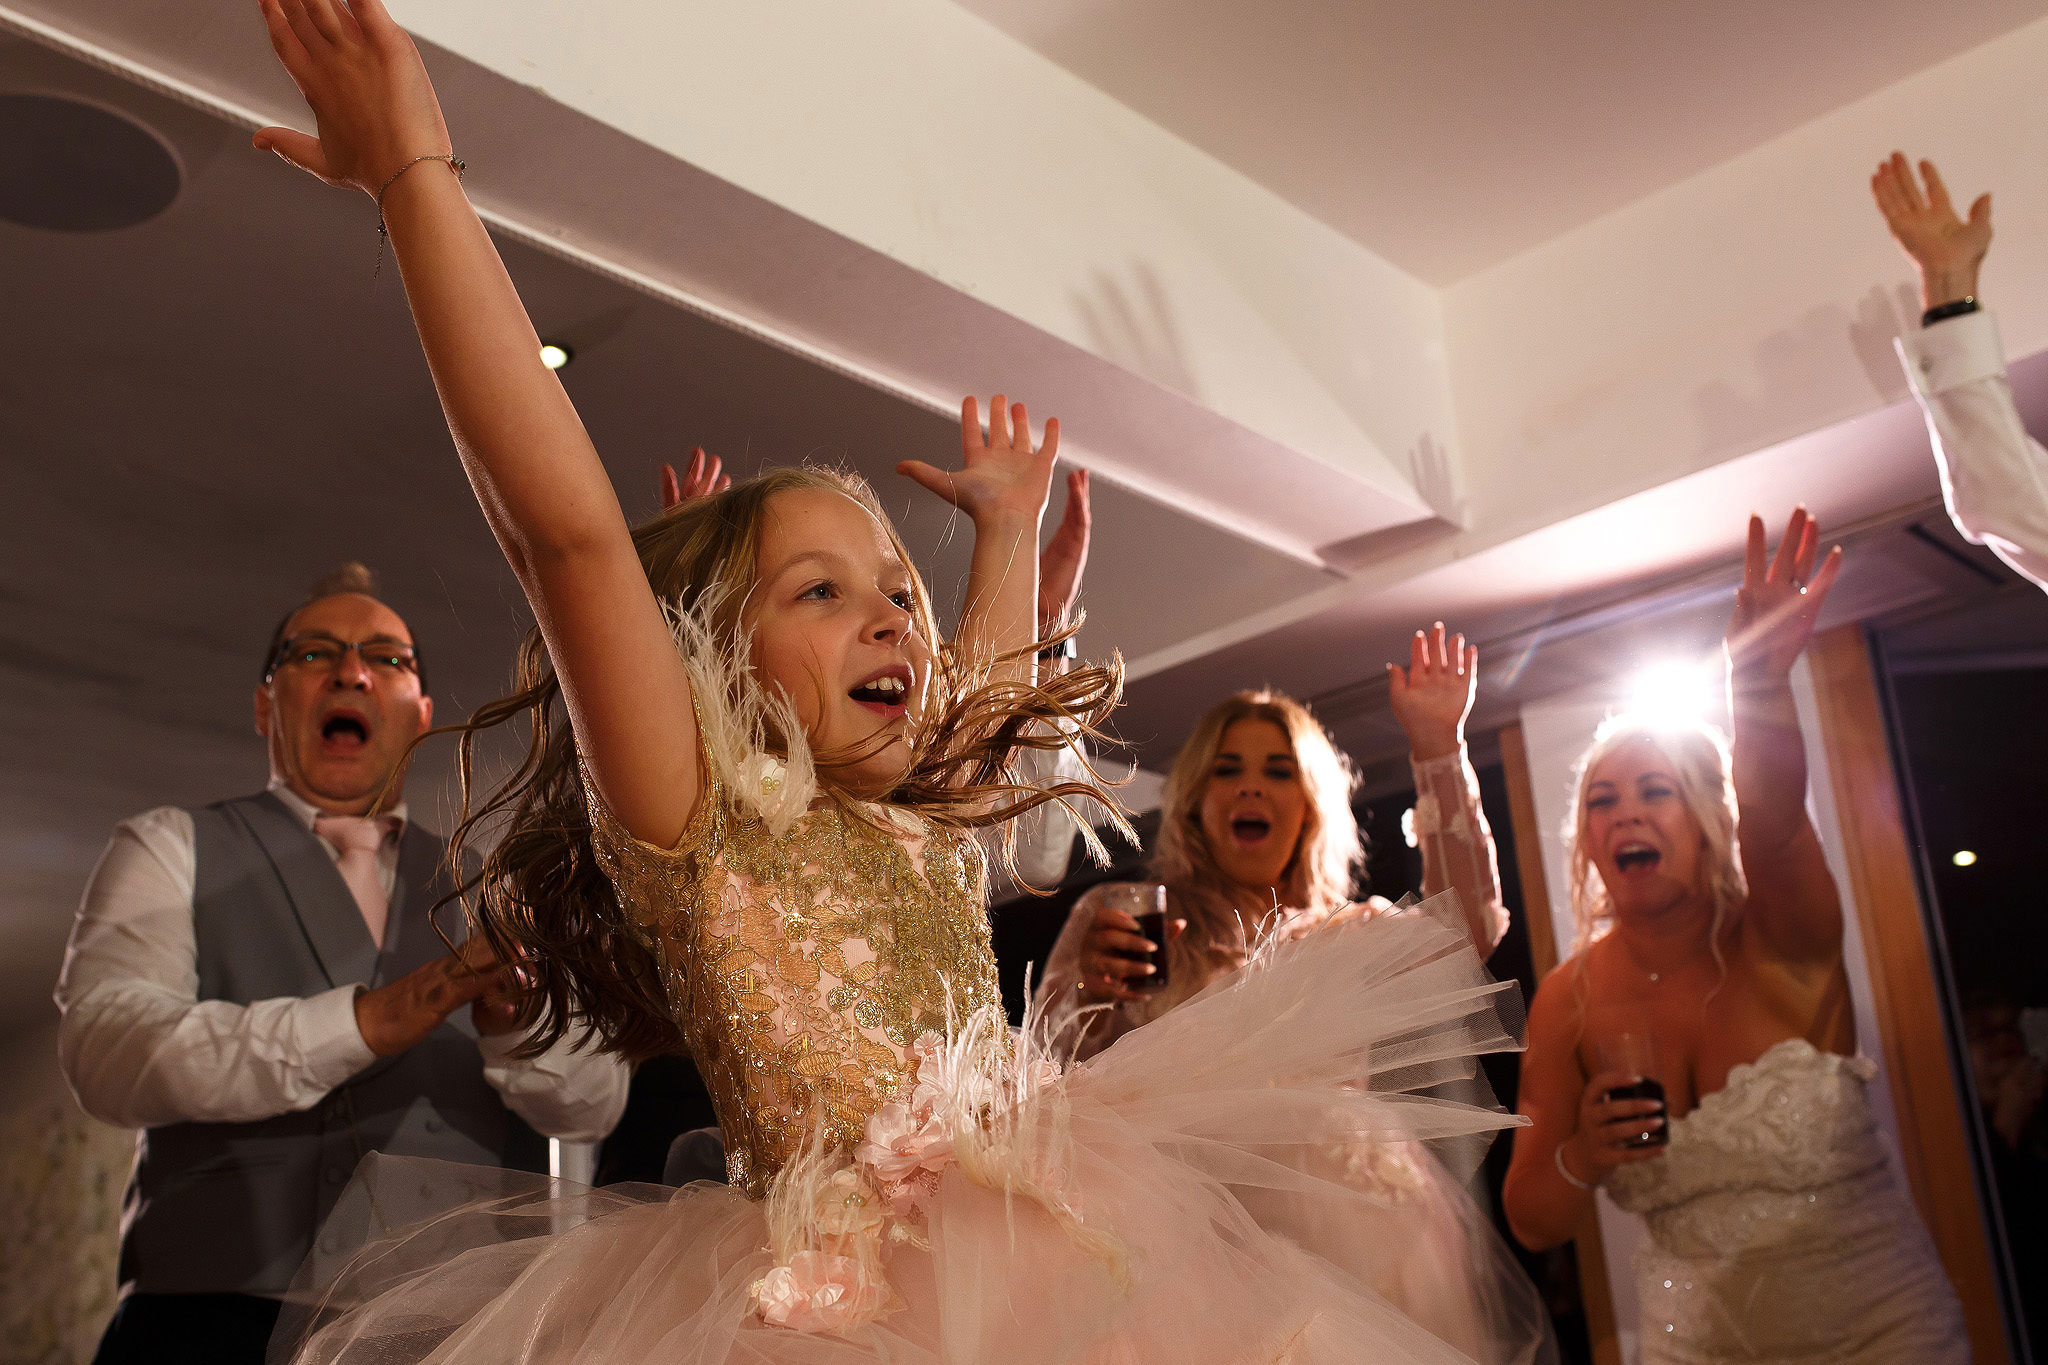 Flower girl throwing hands in the air on the wedding dance floor